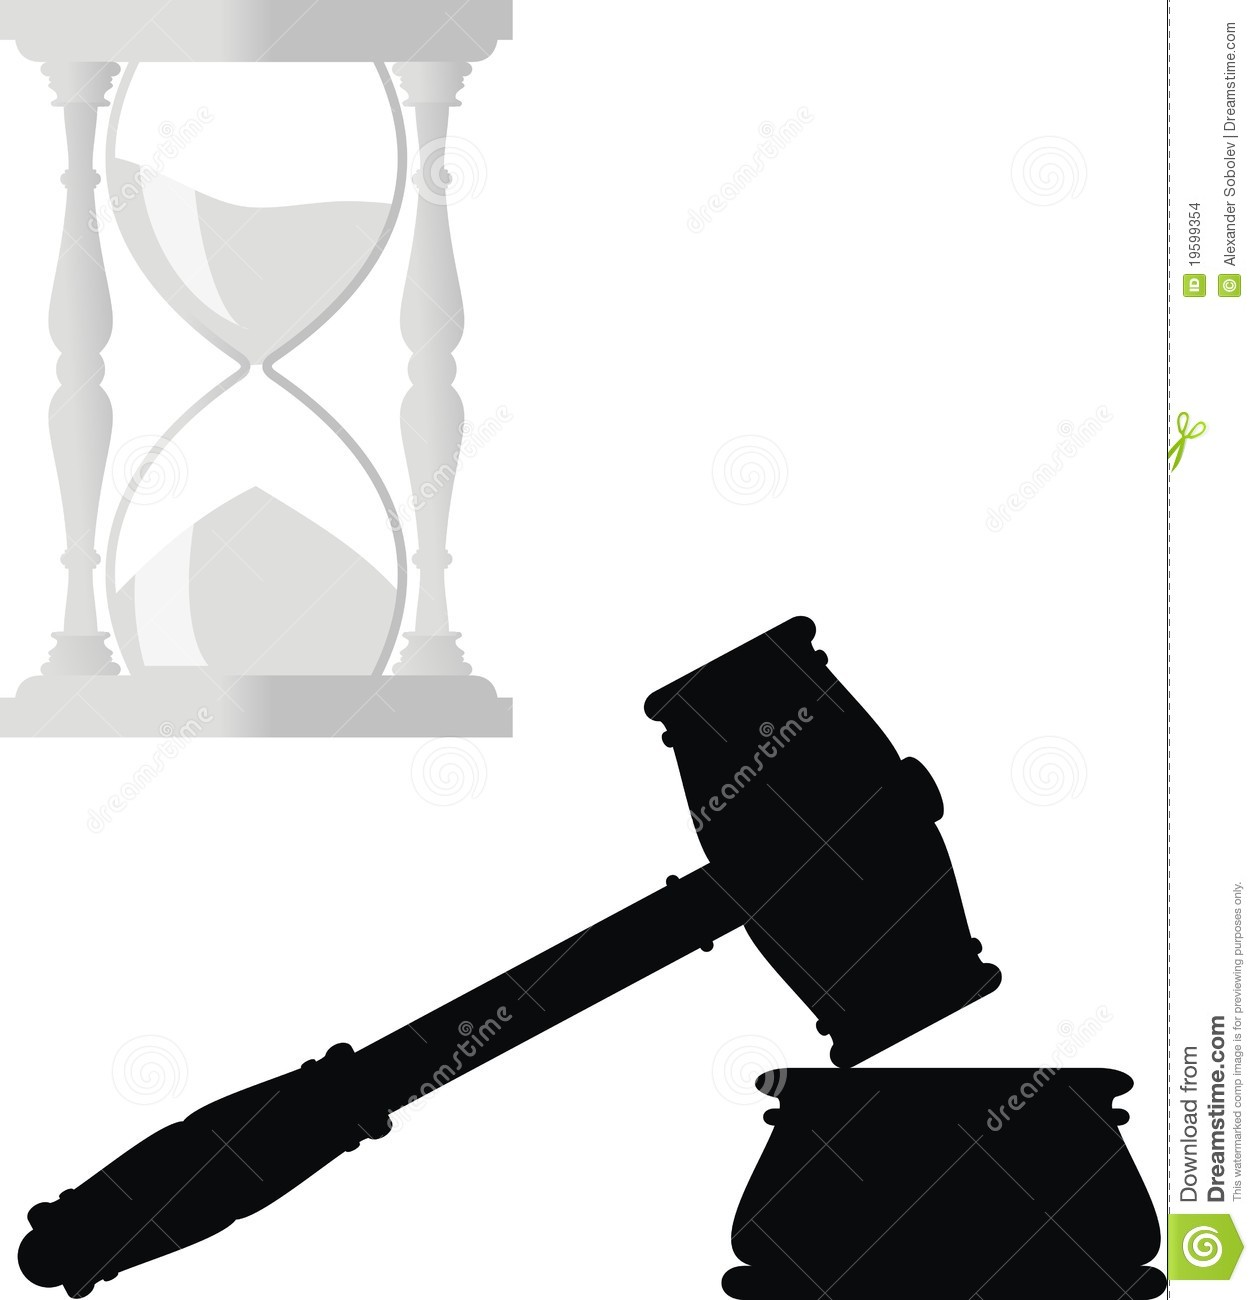 Hammer And Anvil - Symbols Of Law, Hourglass Stock Images ... | 1257 x 1300 jpeg 106kB